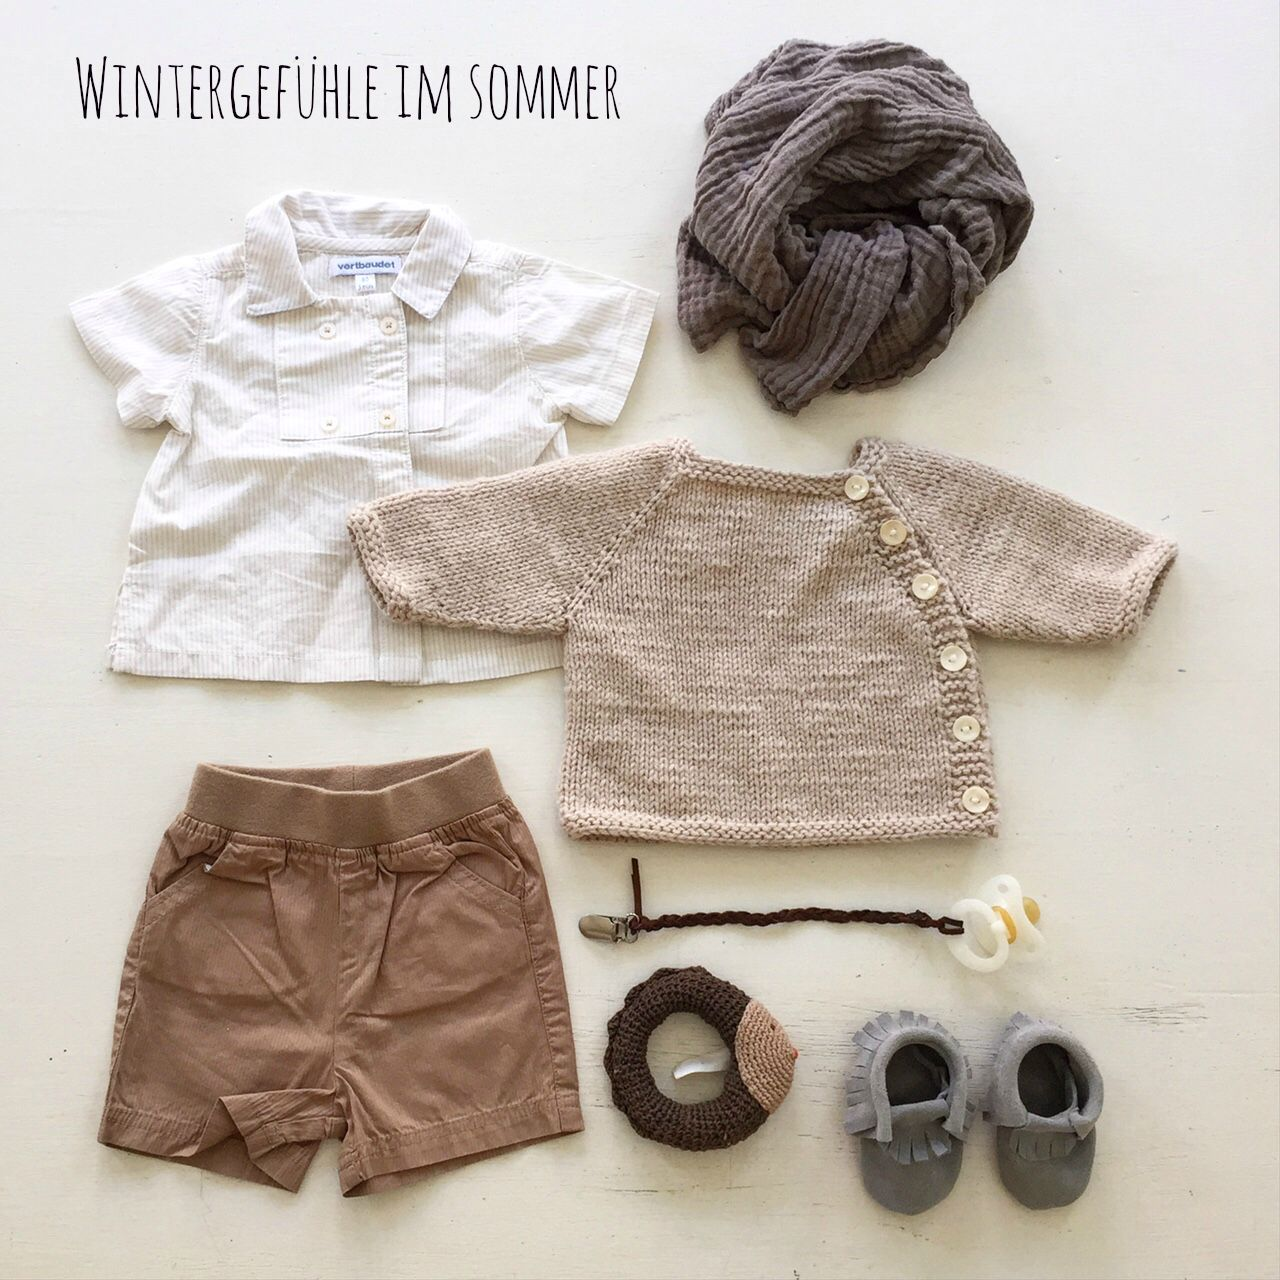 Winter im Sommer